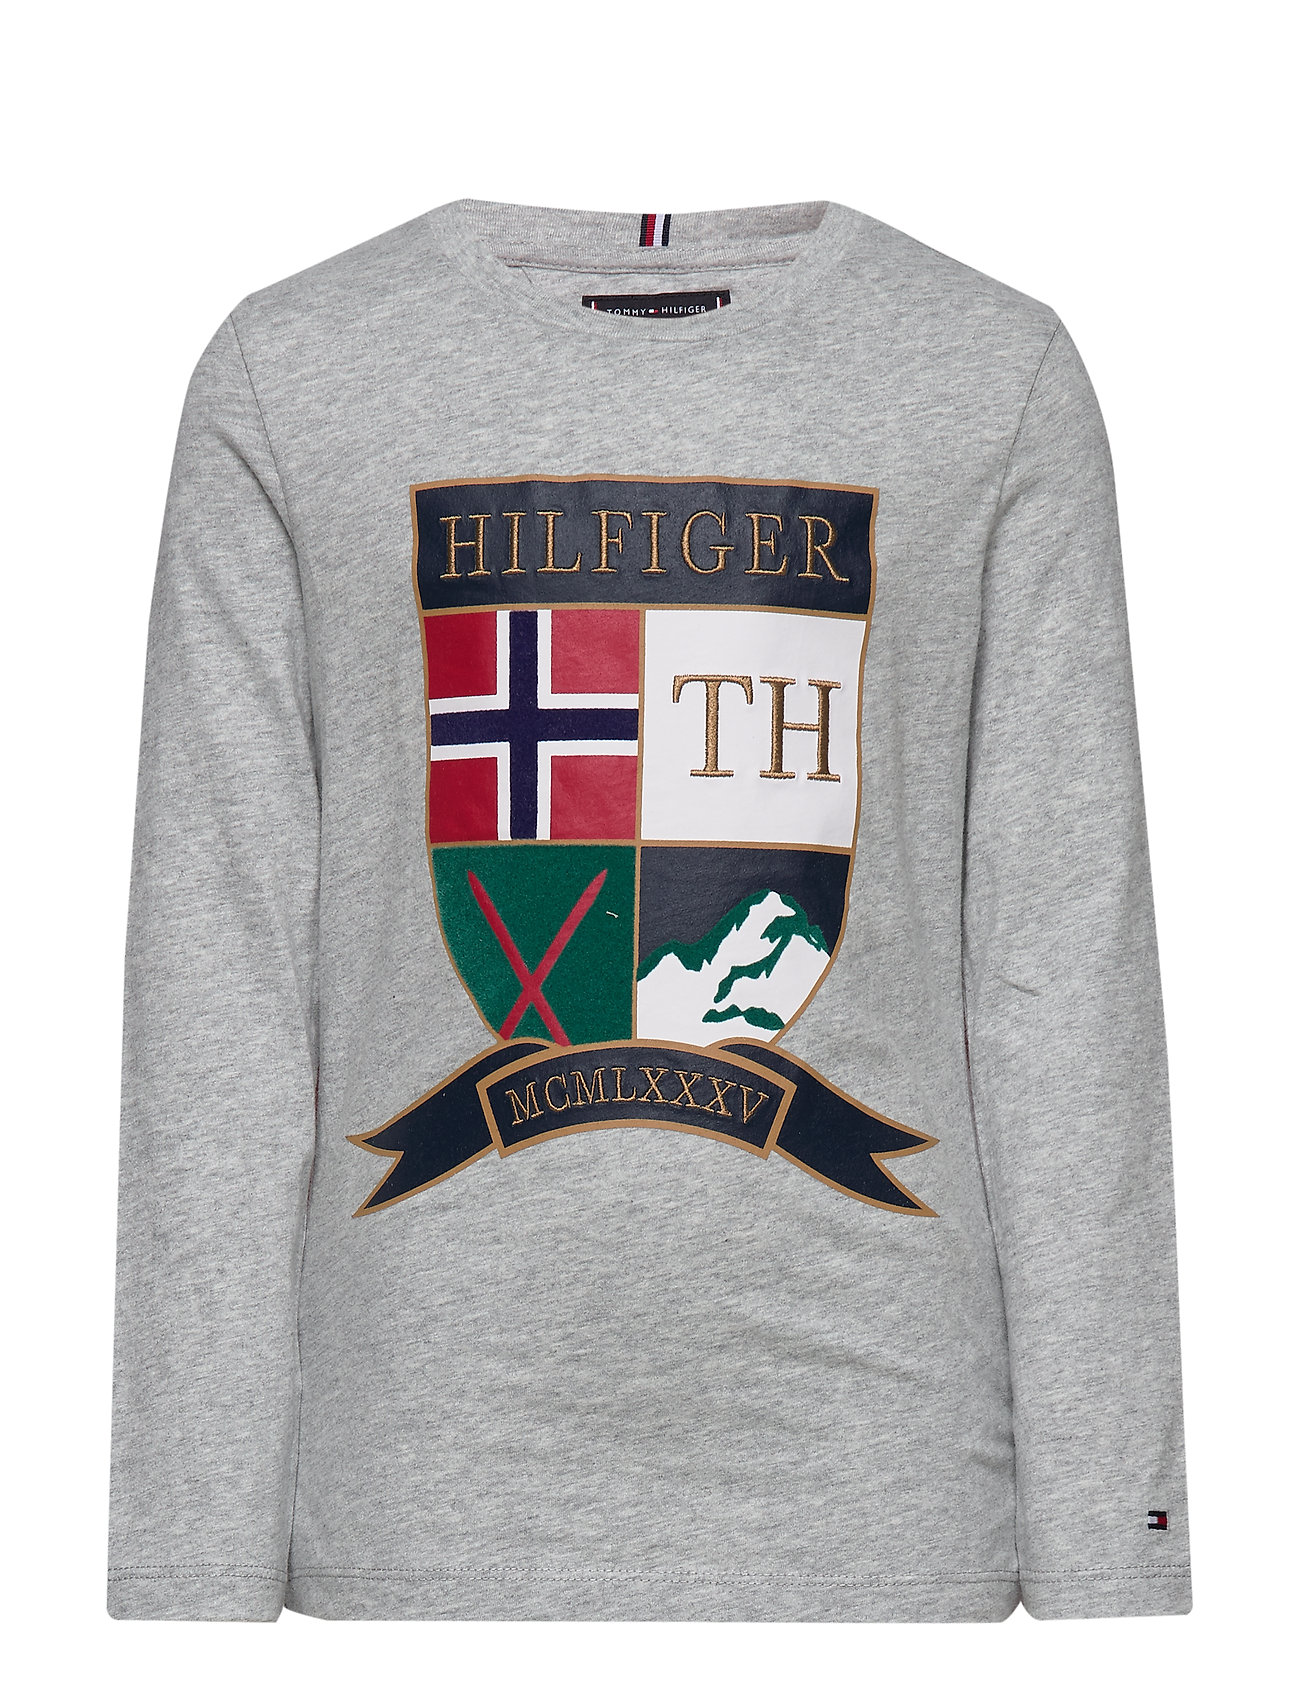 Tommy Hilfiger EMBROIDERED SHIELD T - GREY HEATHER